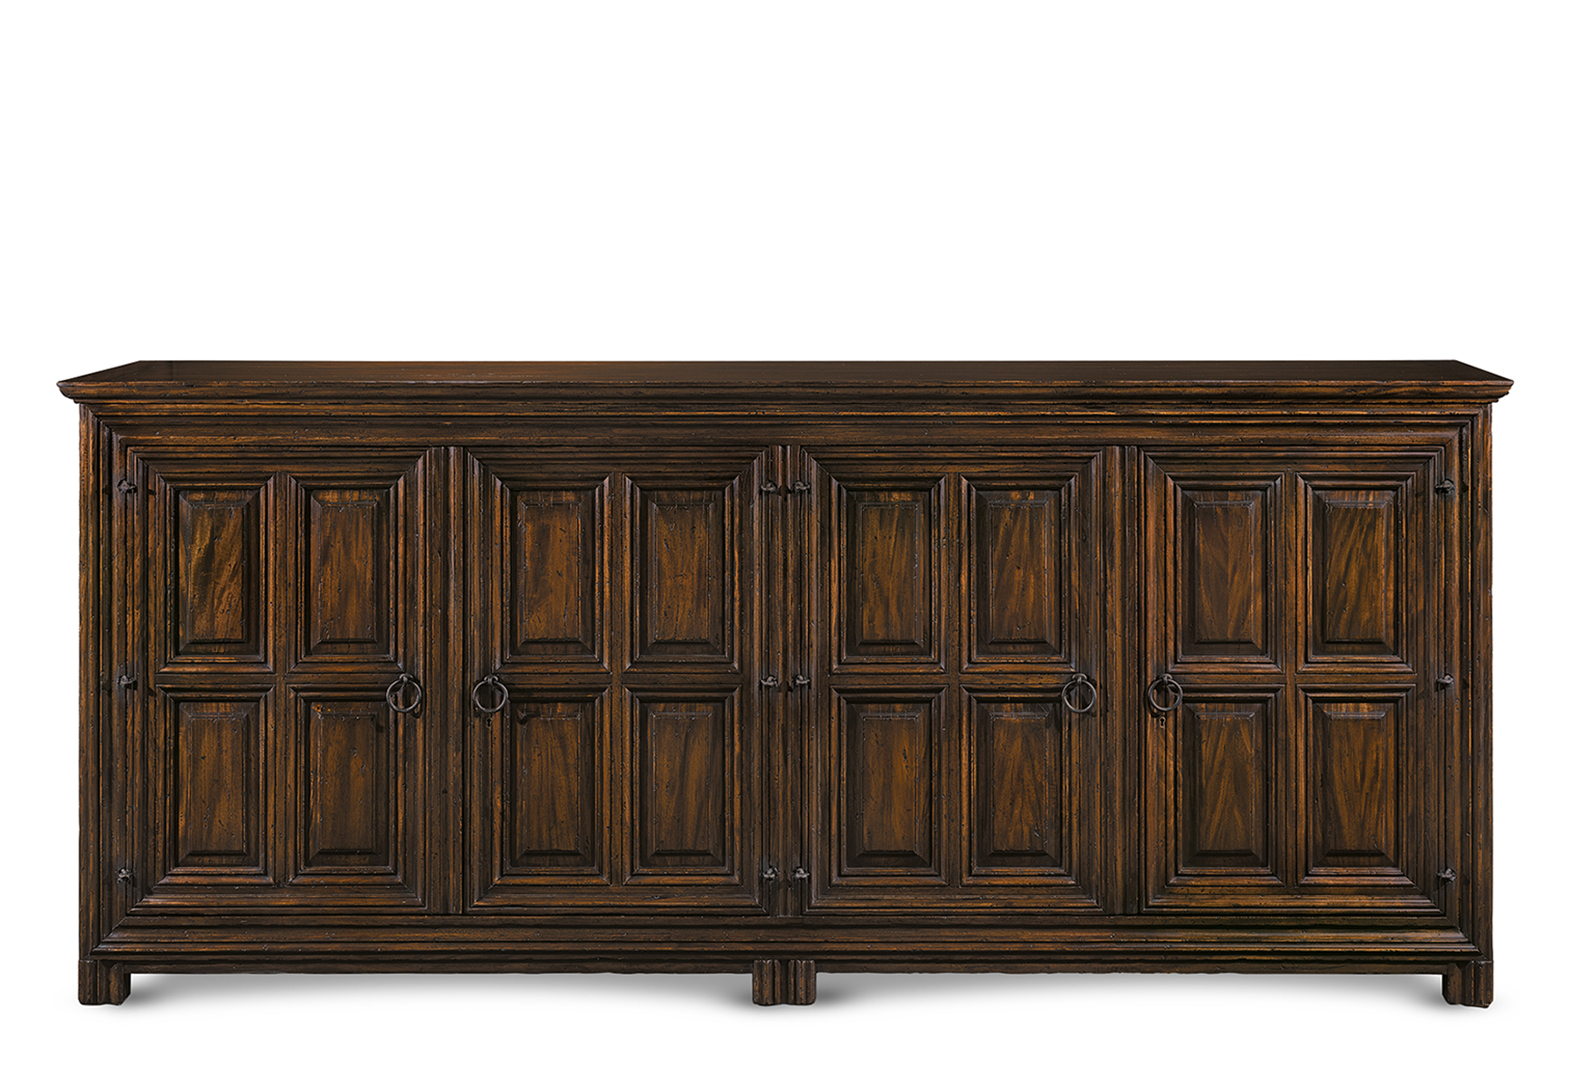 MORELIA SACRISTY CHEST WITH 4 DOORS